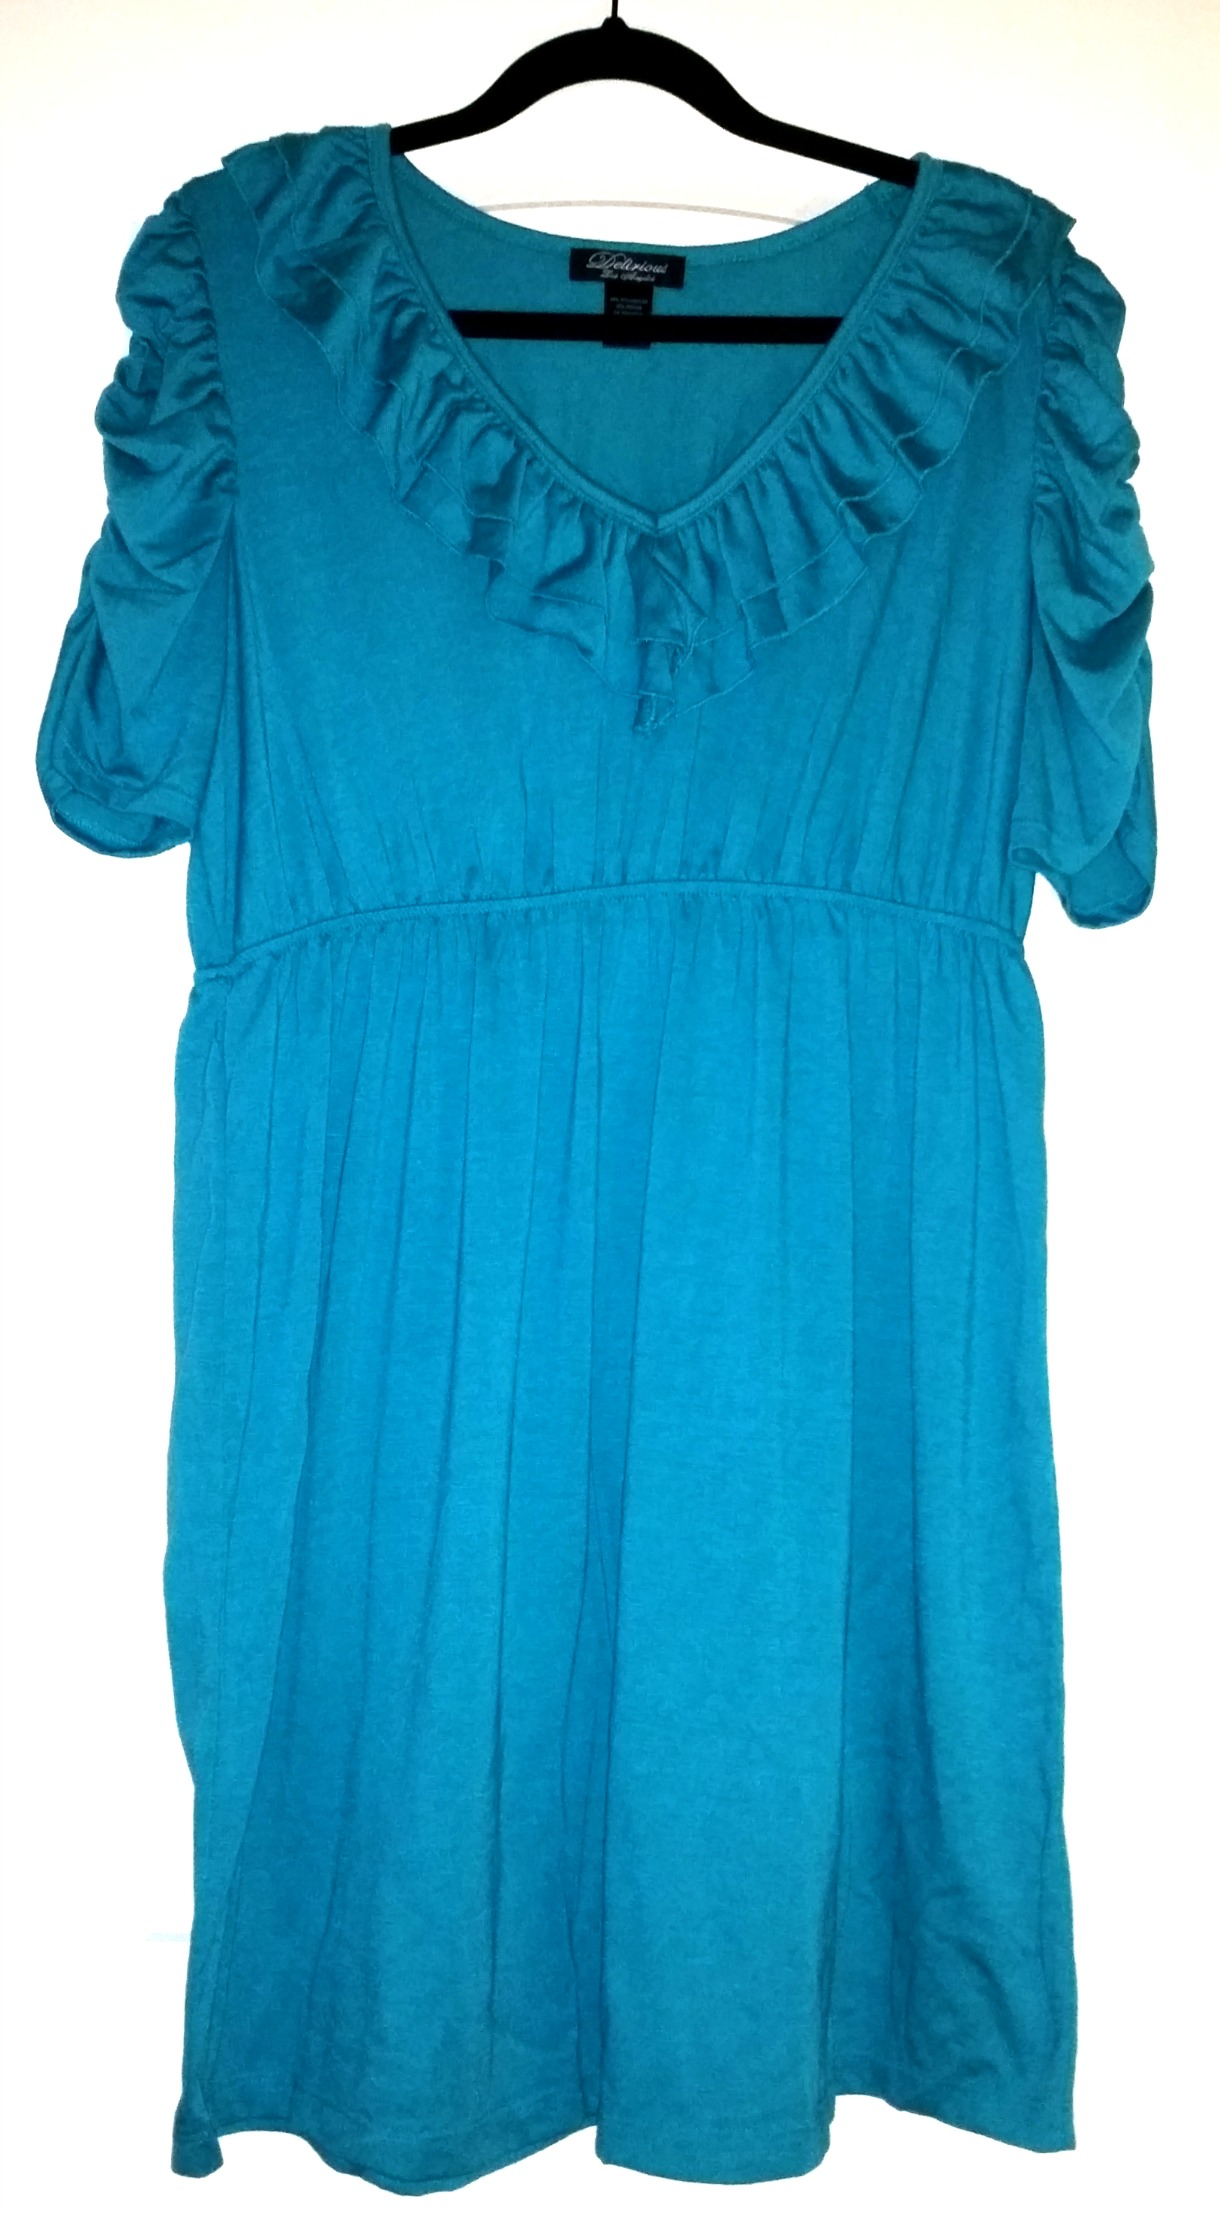 Shop for teal jersey dress online at Target. Free shipping on purchases over $35 and save 5% every day with your Target REDcard.